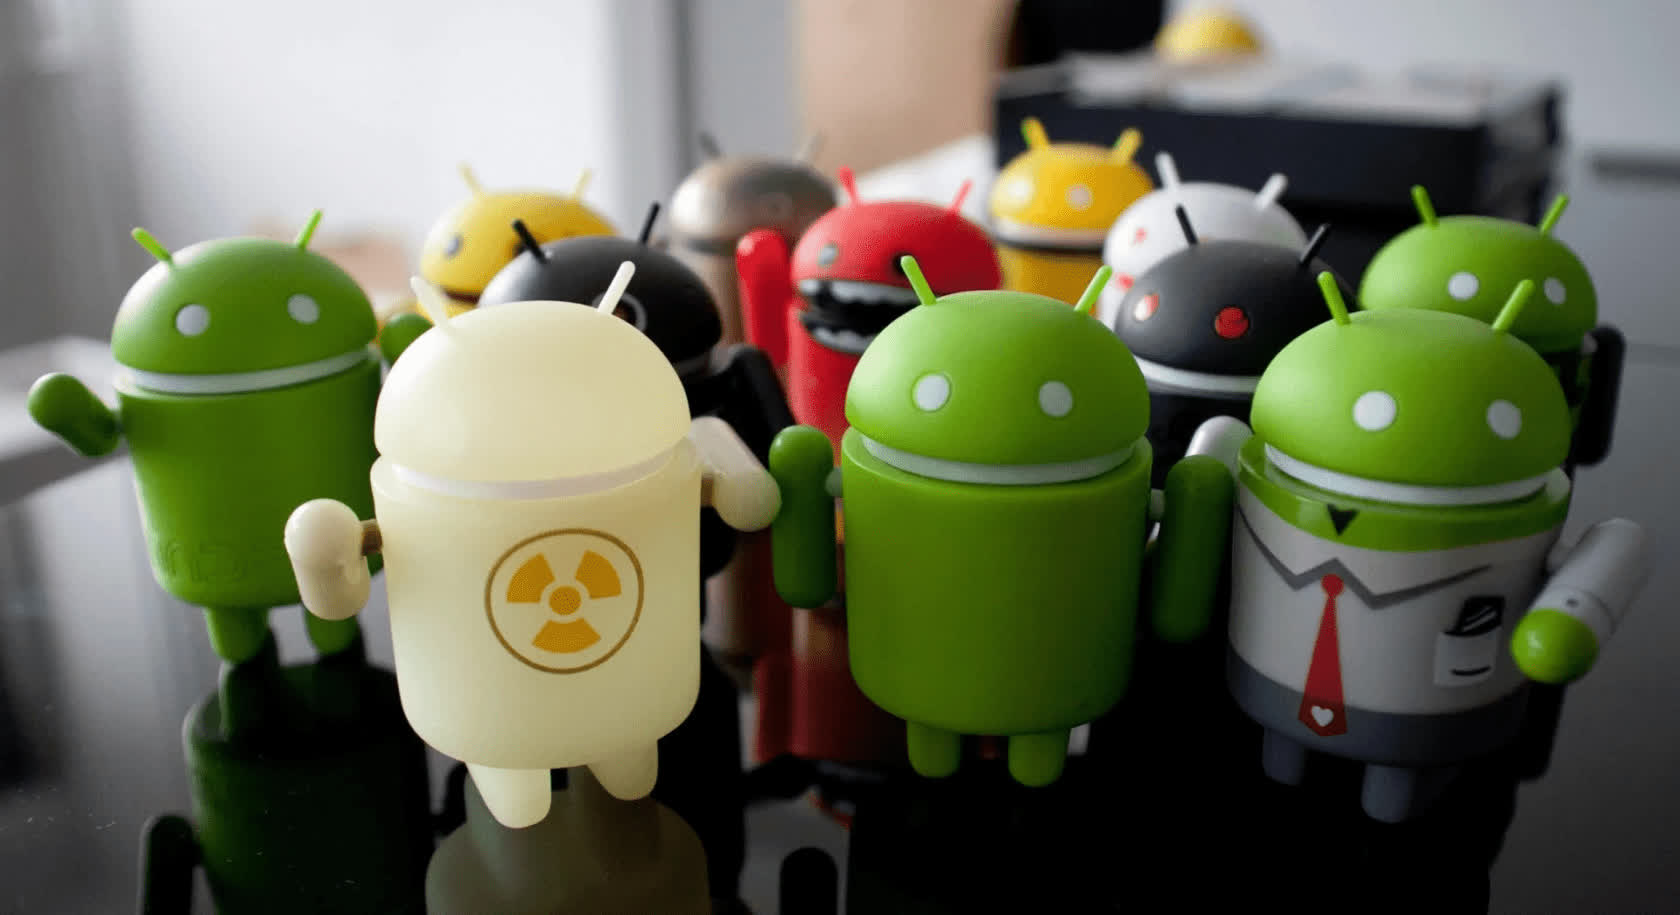 Android 12 will better support third-party app stores